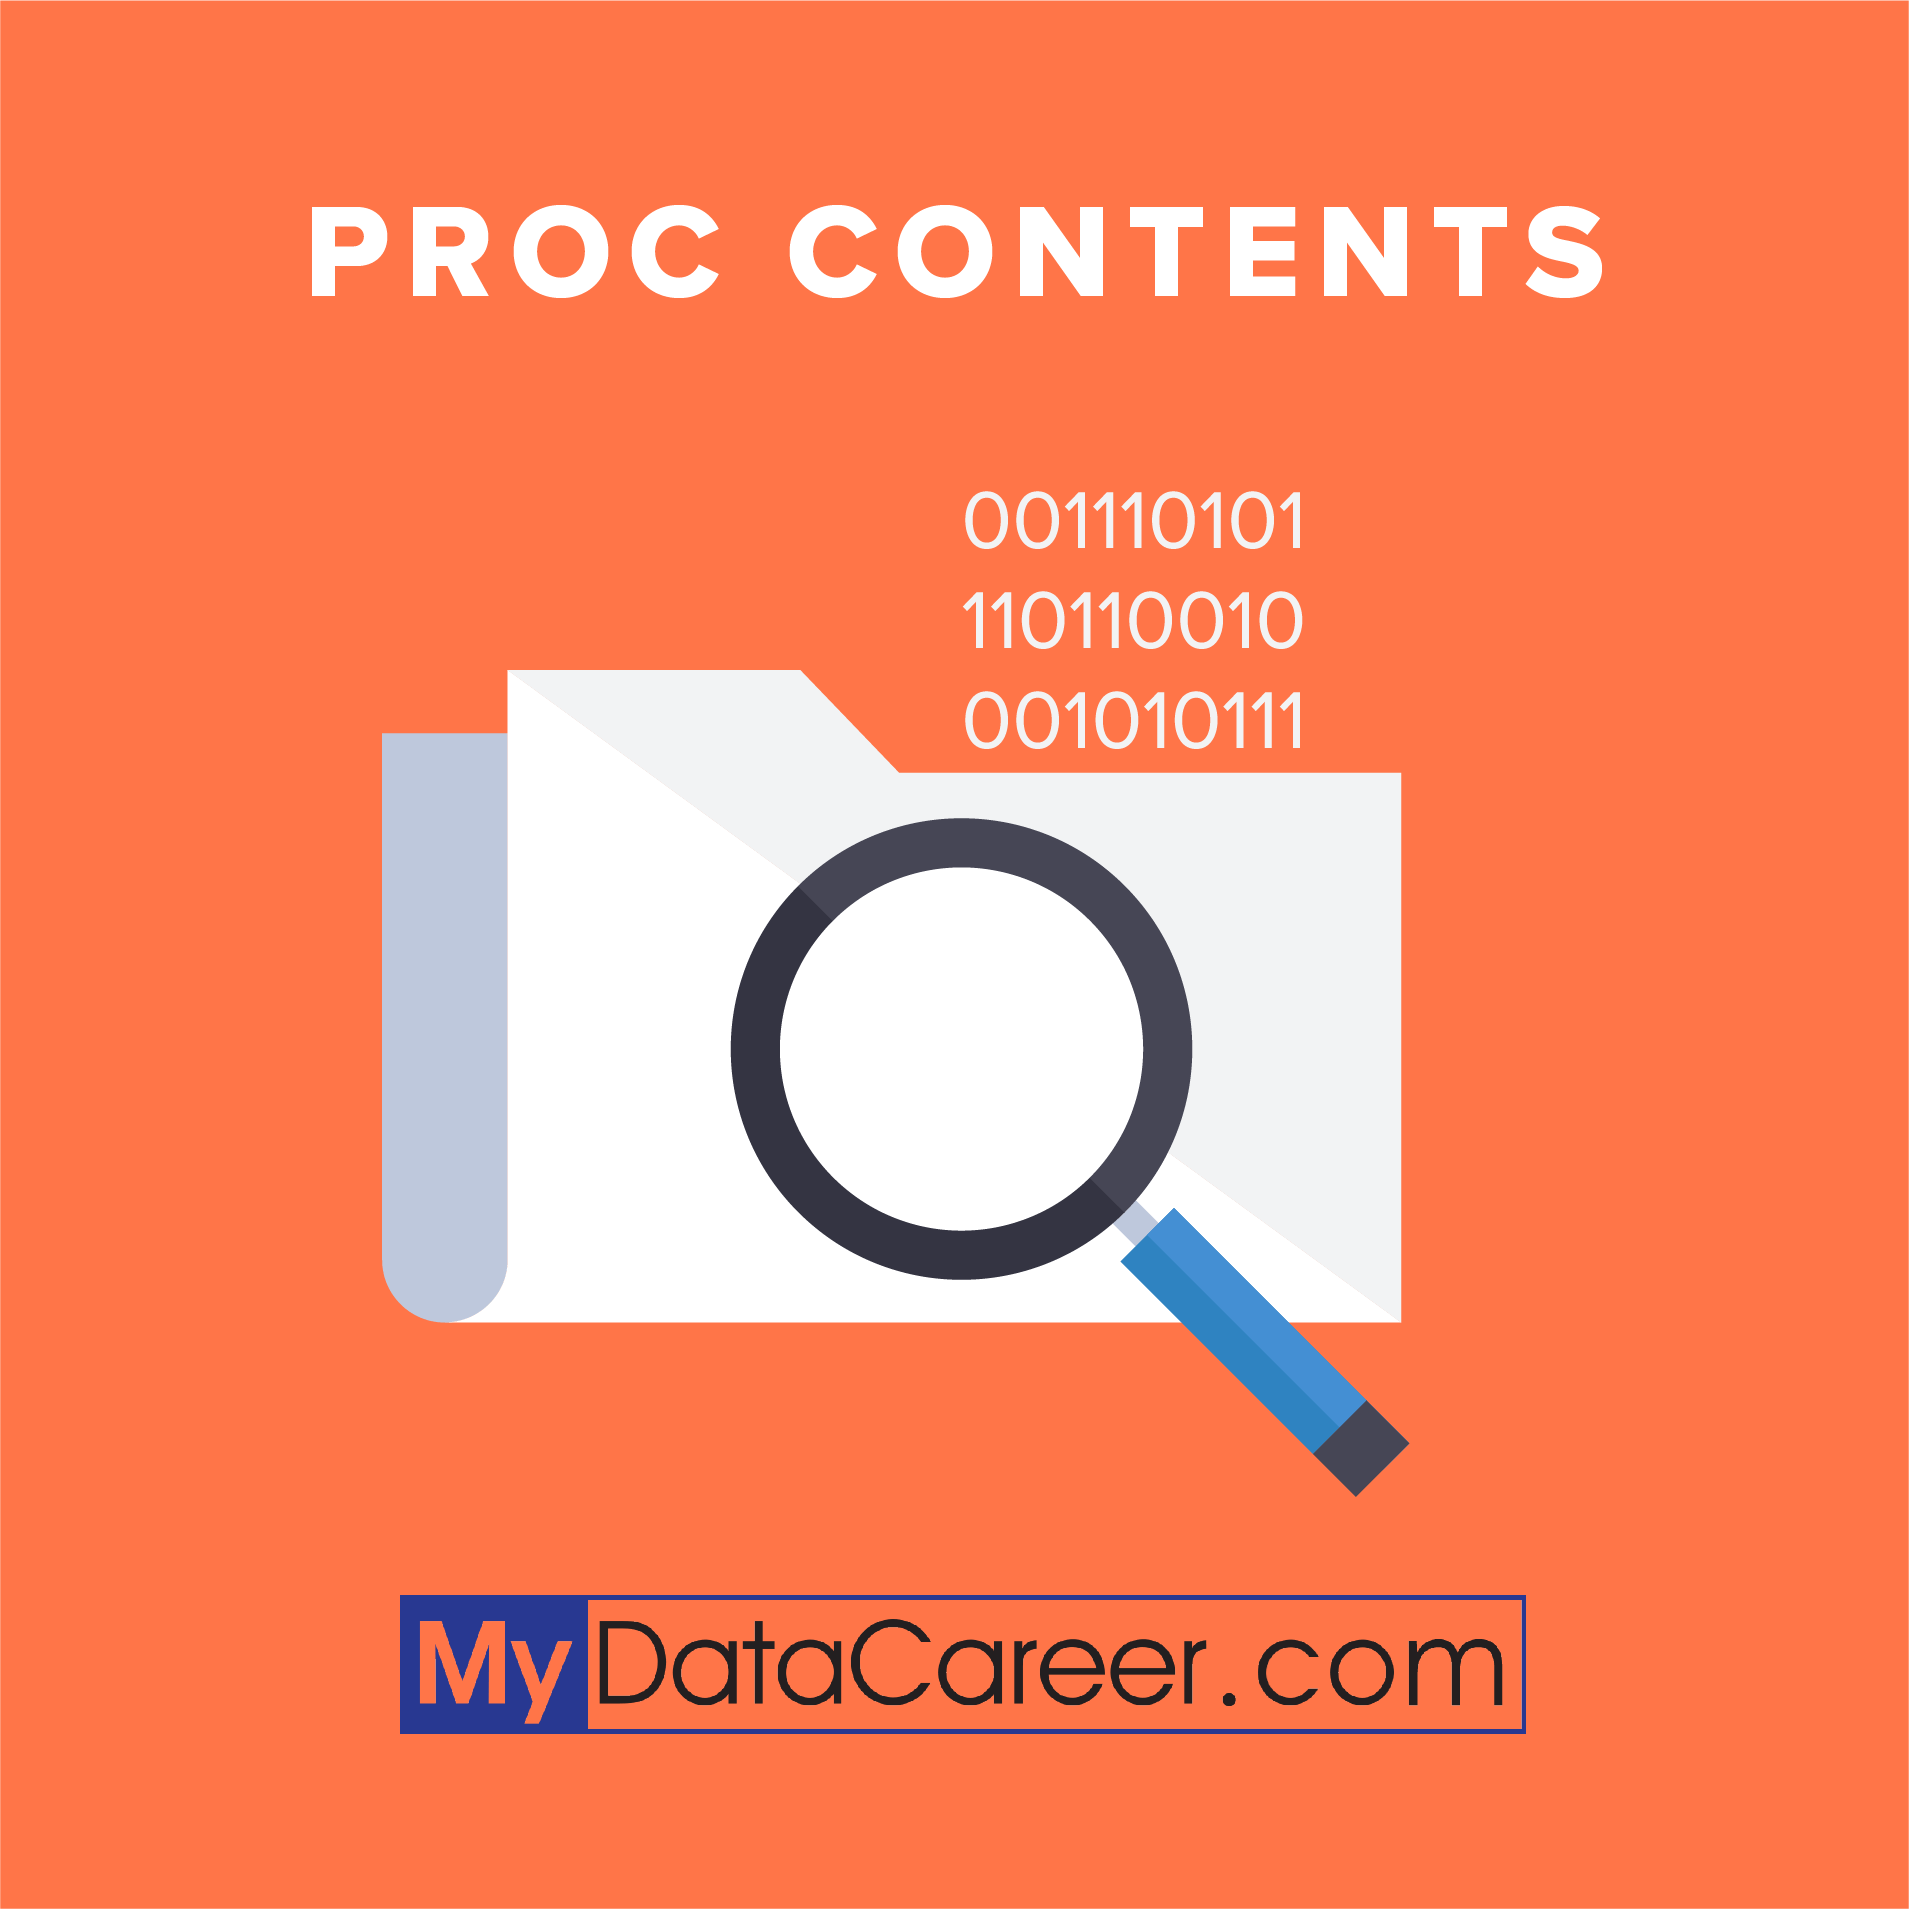 proc contentsRemove term: proc contents options proc contents optionsRemove term: SAS SASRemove term: sas proc contents sas proc contentsRemove term: sas proc contents example sas proc contents exampleRemove term: sas proc contents options sas proc contents options